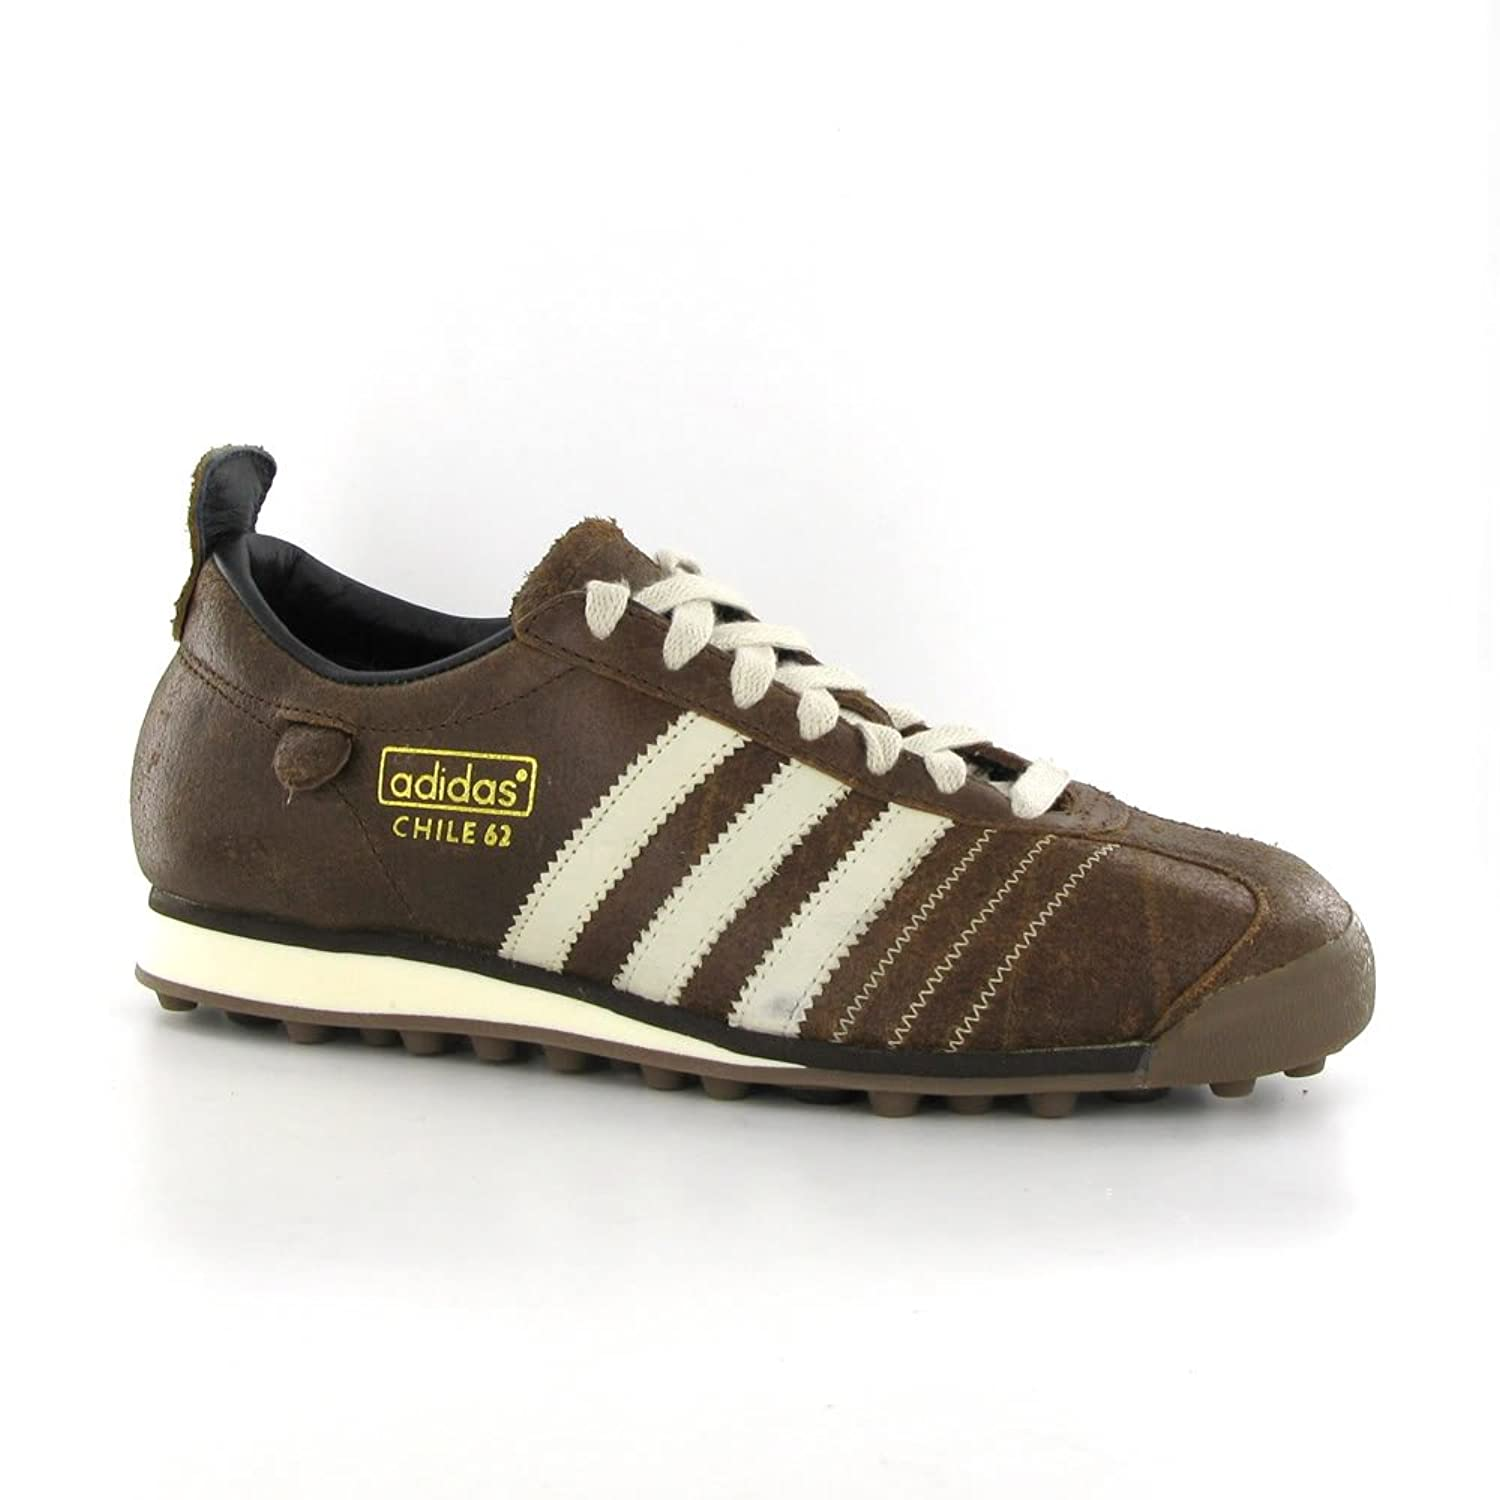 Adidas Chile 62 Coffee Leather Mens Trainers Size 11 UK: Amazon.co.uk: Shoes  & Bags